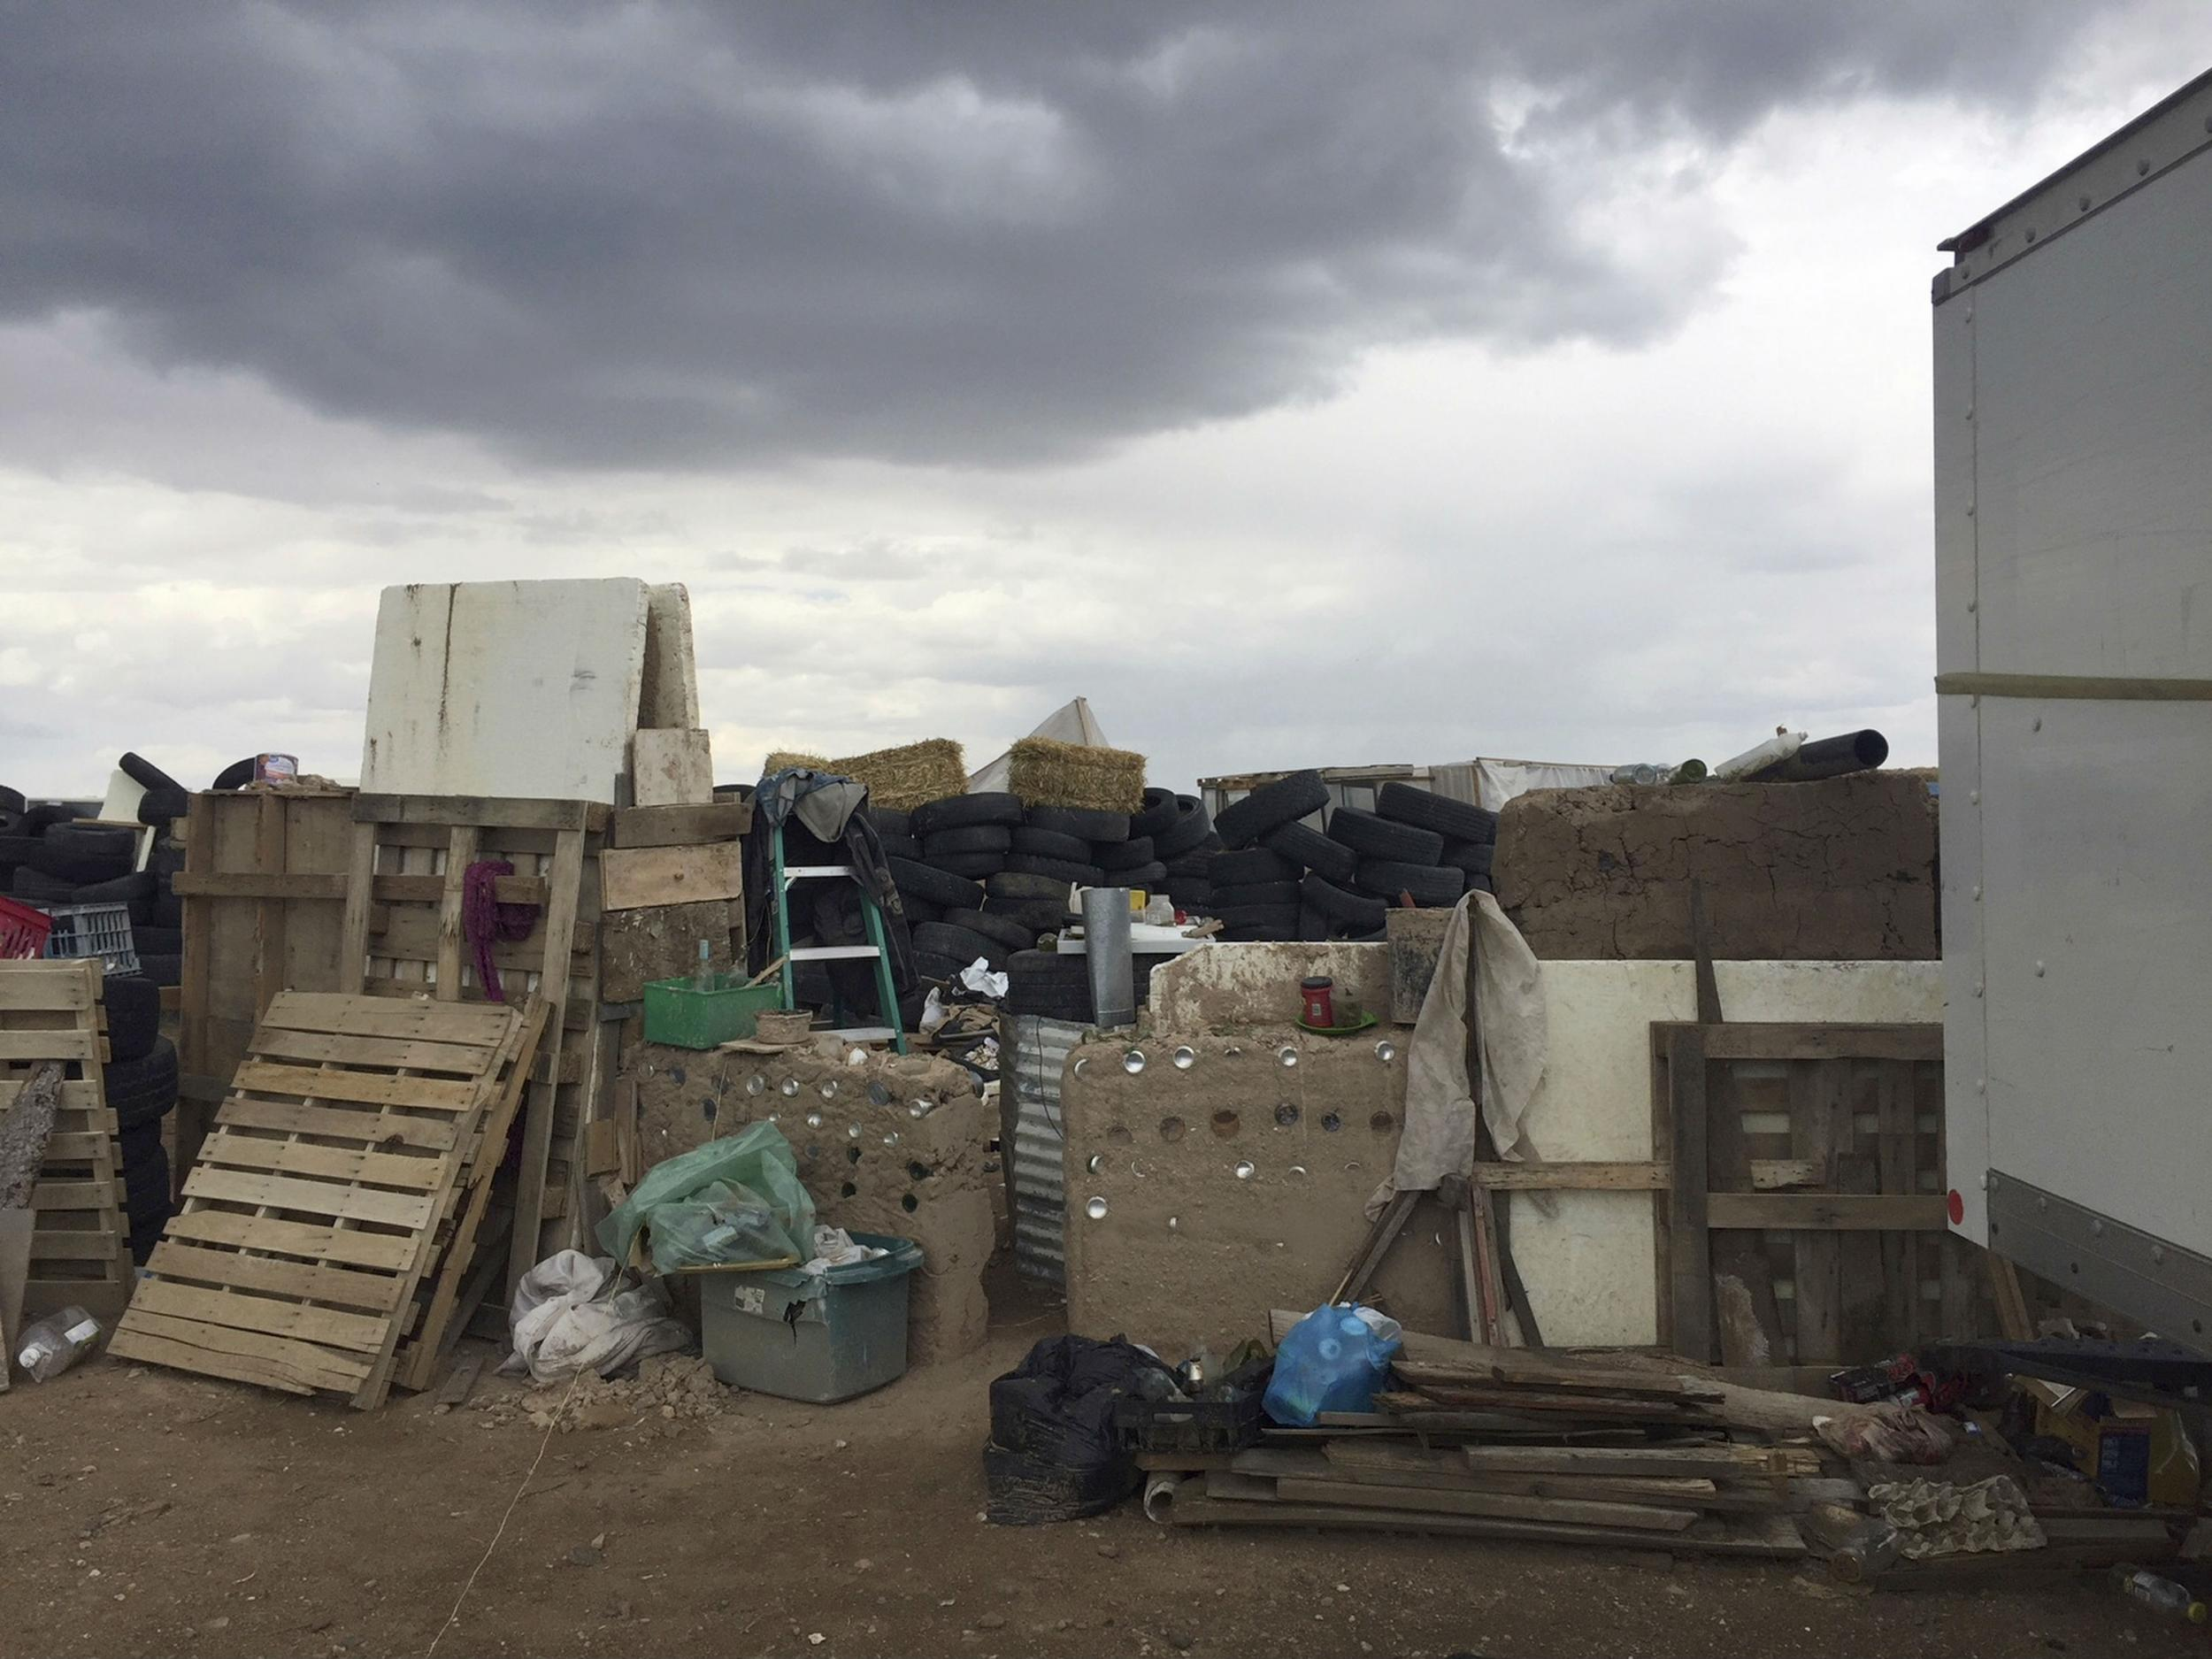 Emaciated children rescued from filthy and heavily armed New Mexico compound